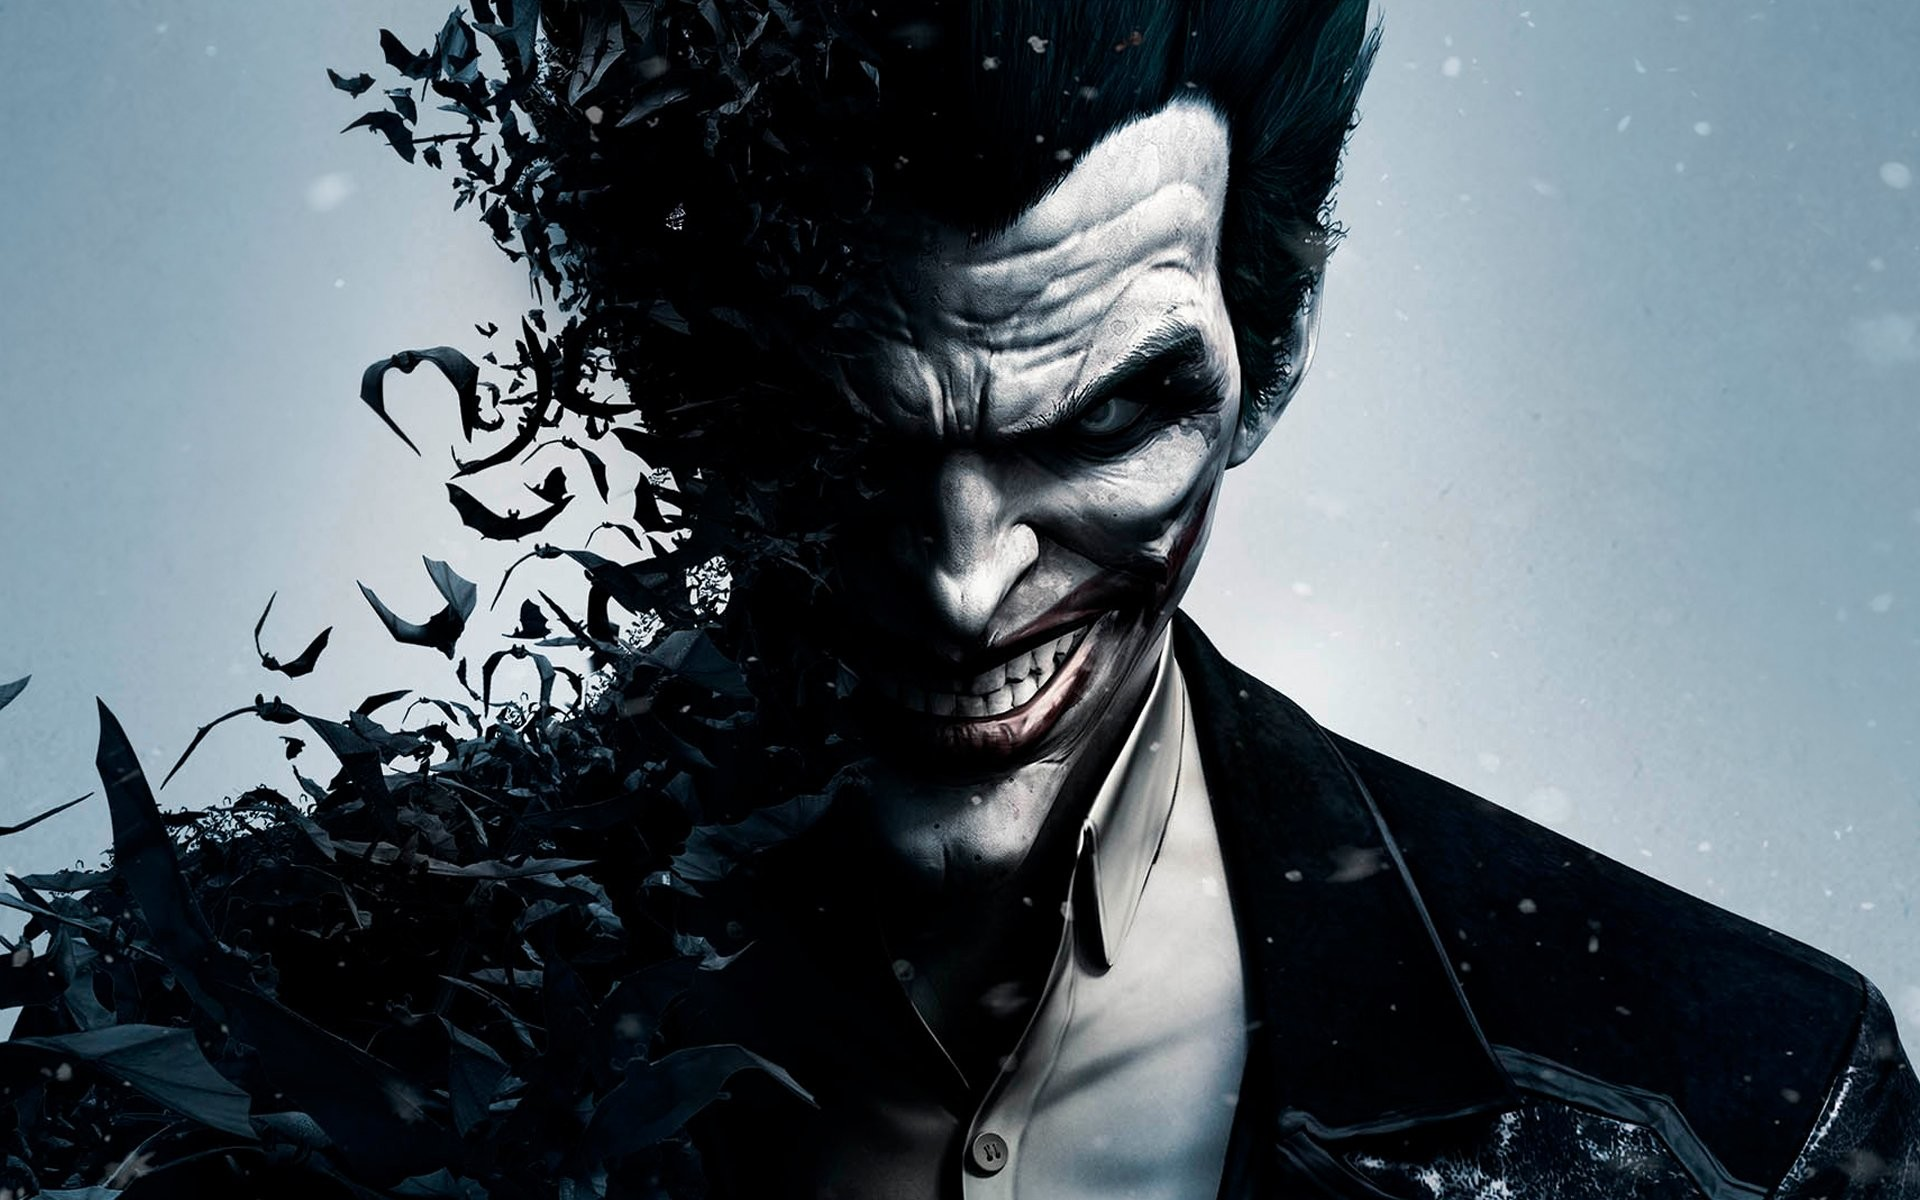 Joker Hd Wallpapers 1080p 80 Images